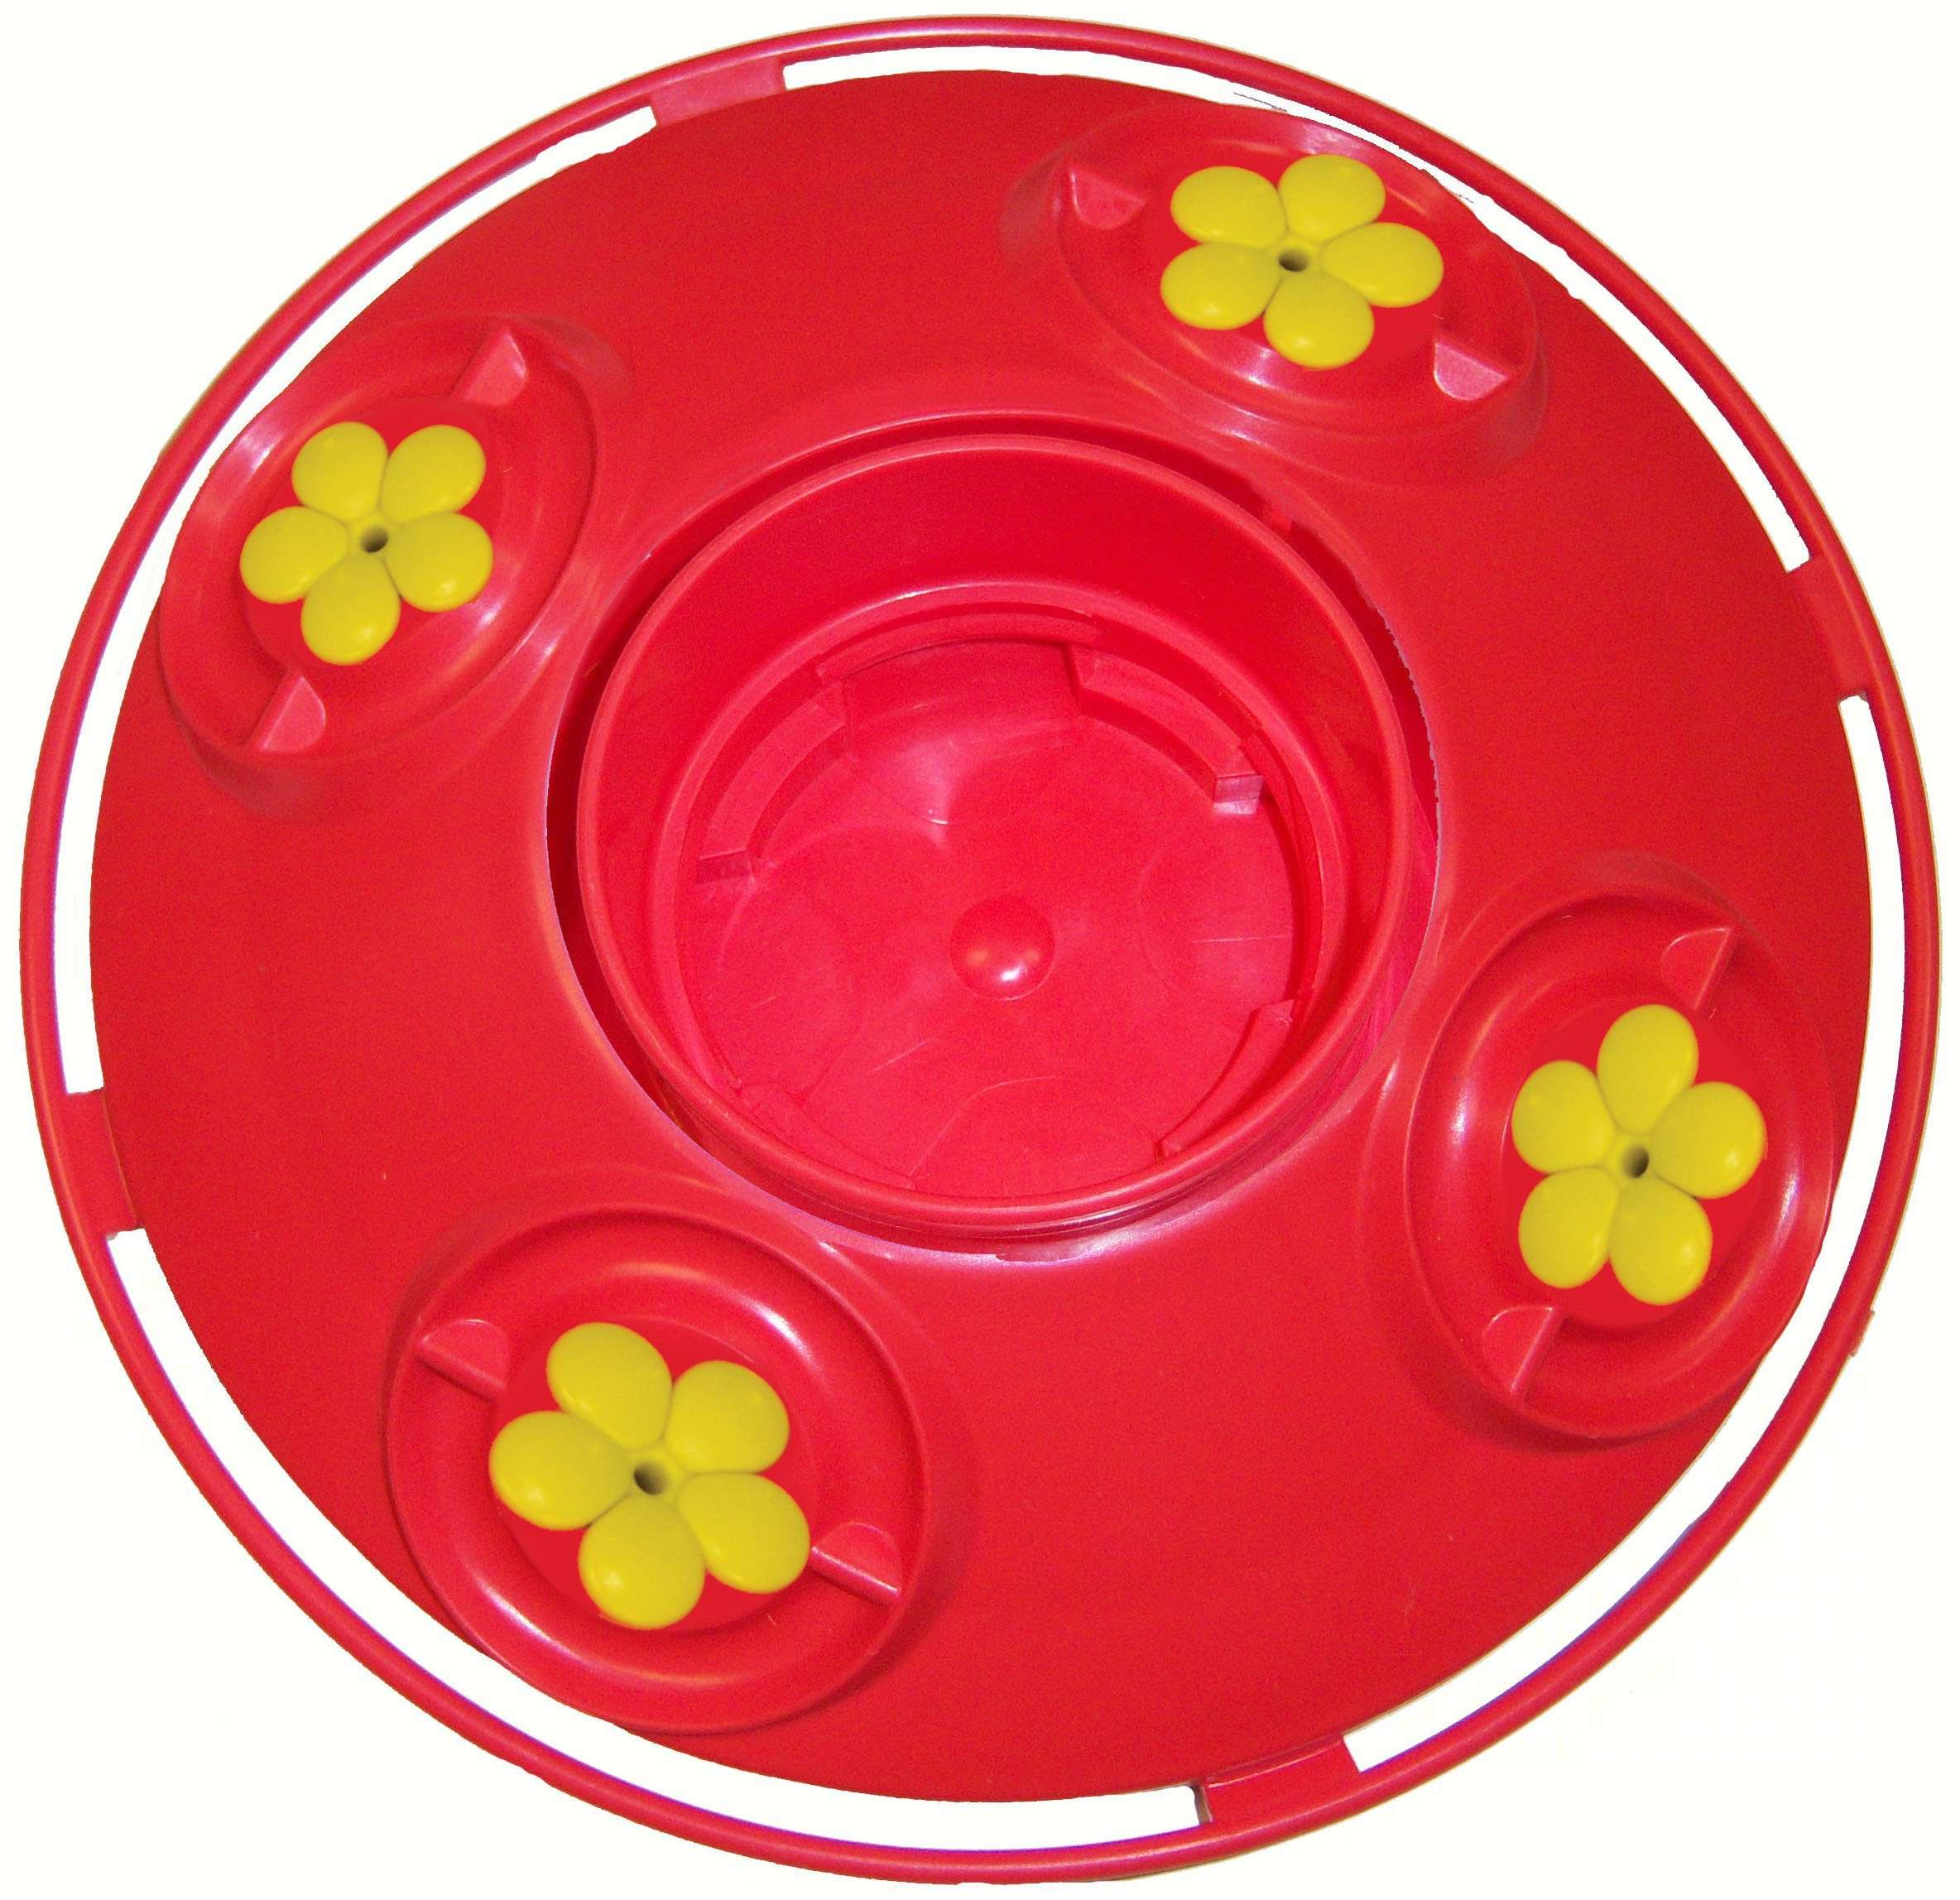 Dr. JB's Replacement Base with Yellow Flowers - Quantity 1